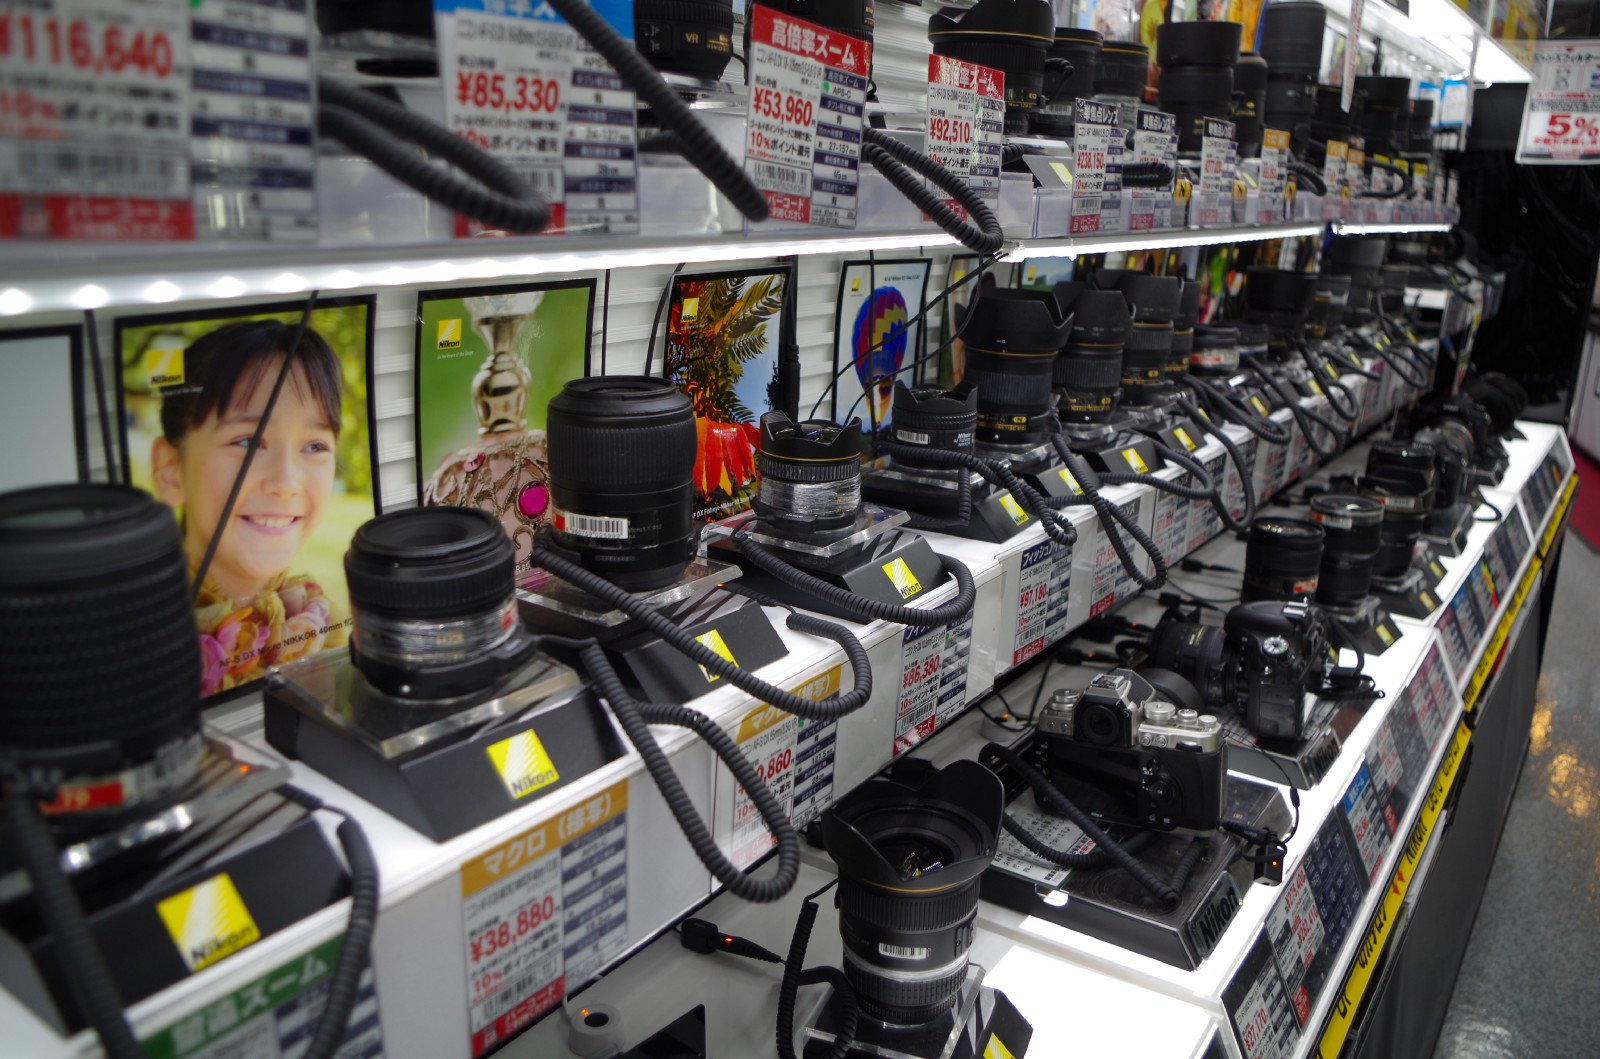 Camera lenses sold at Yodobashi Akiba